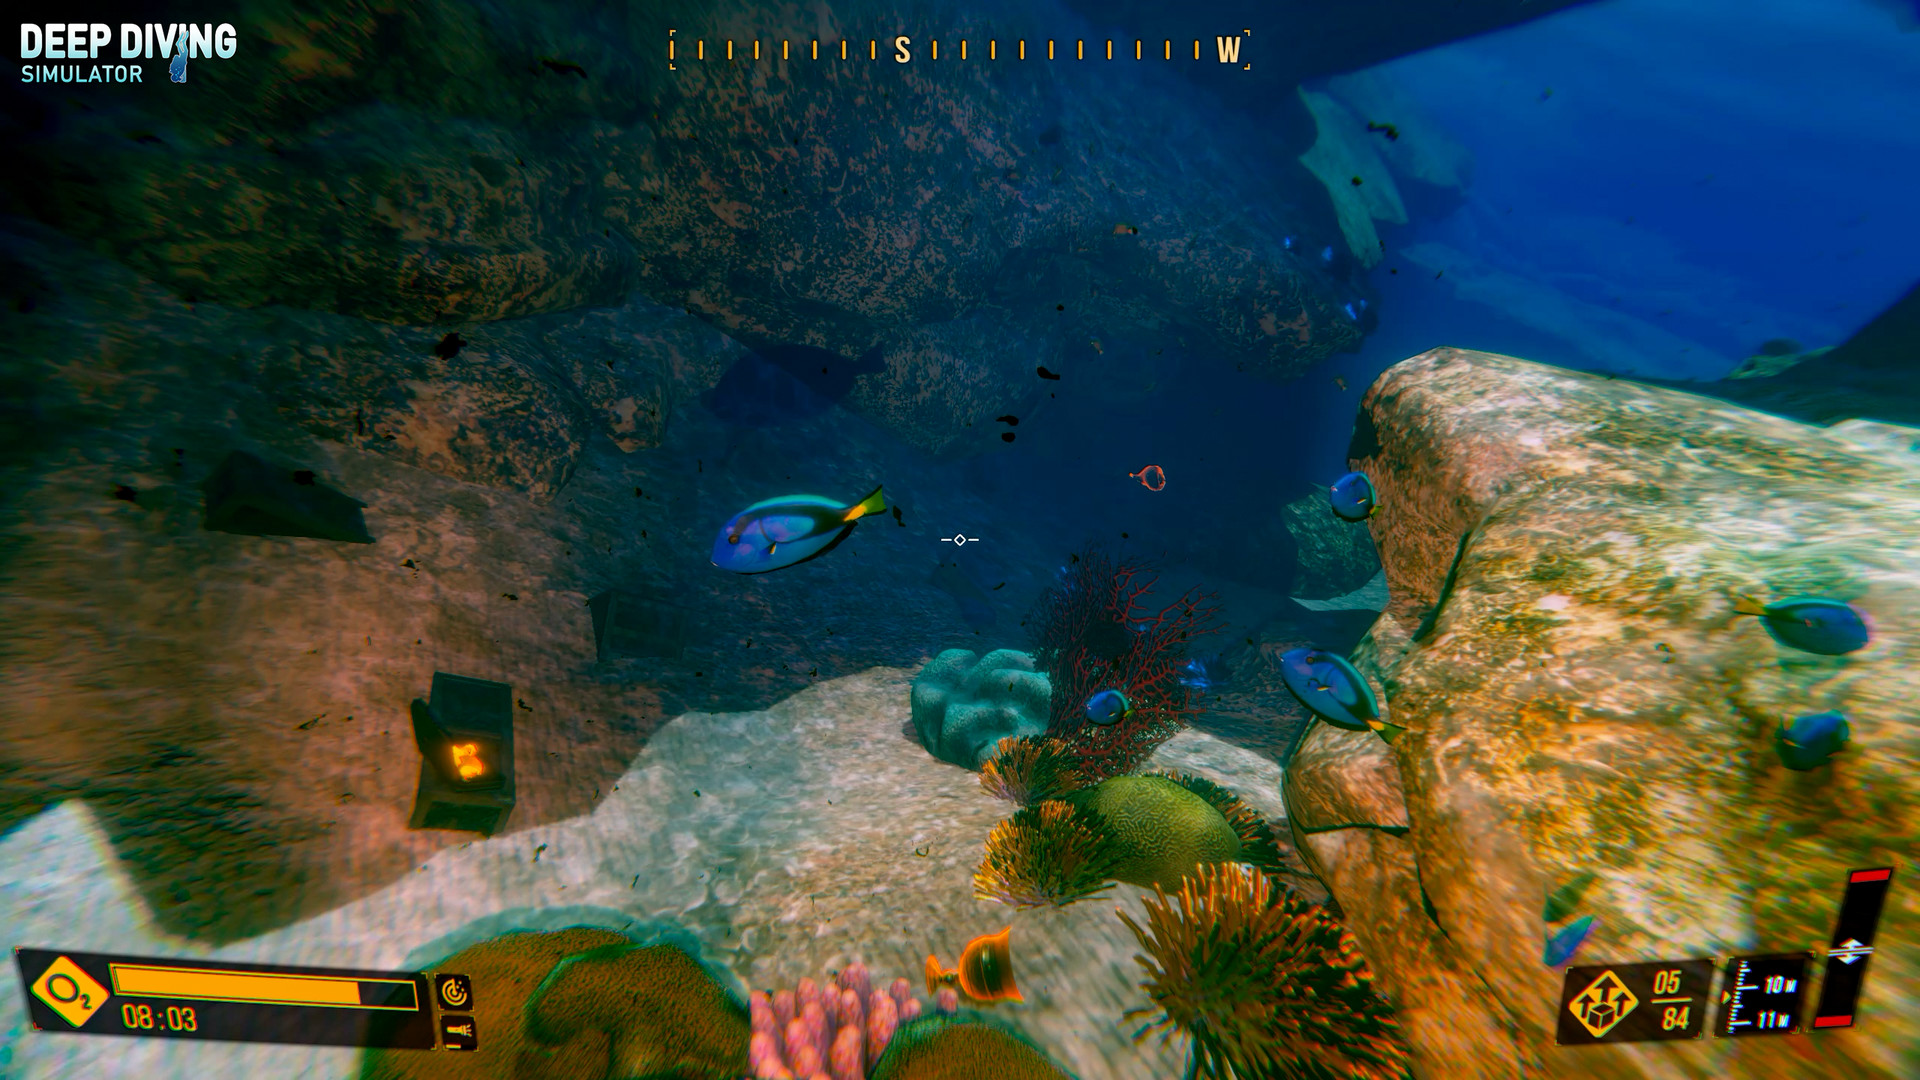 Deep Diving Simulator Torrent Download